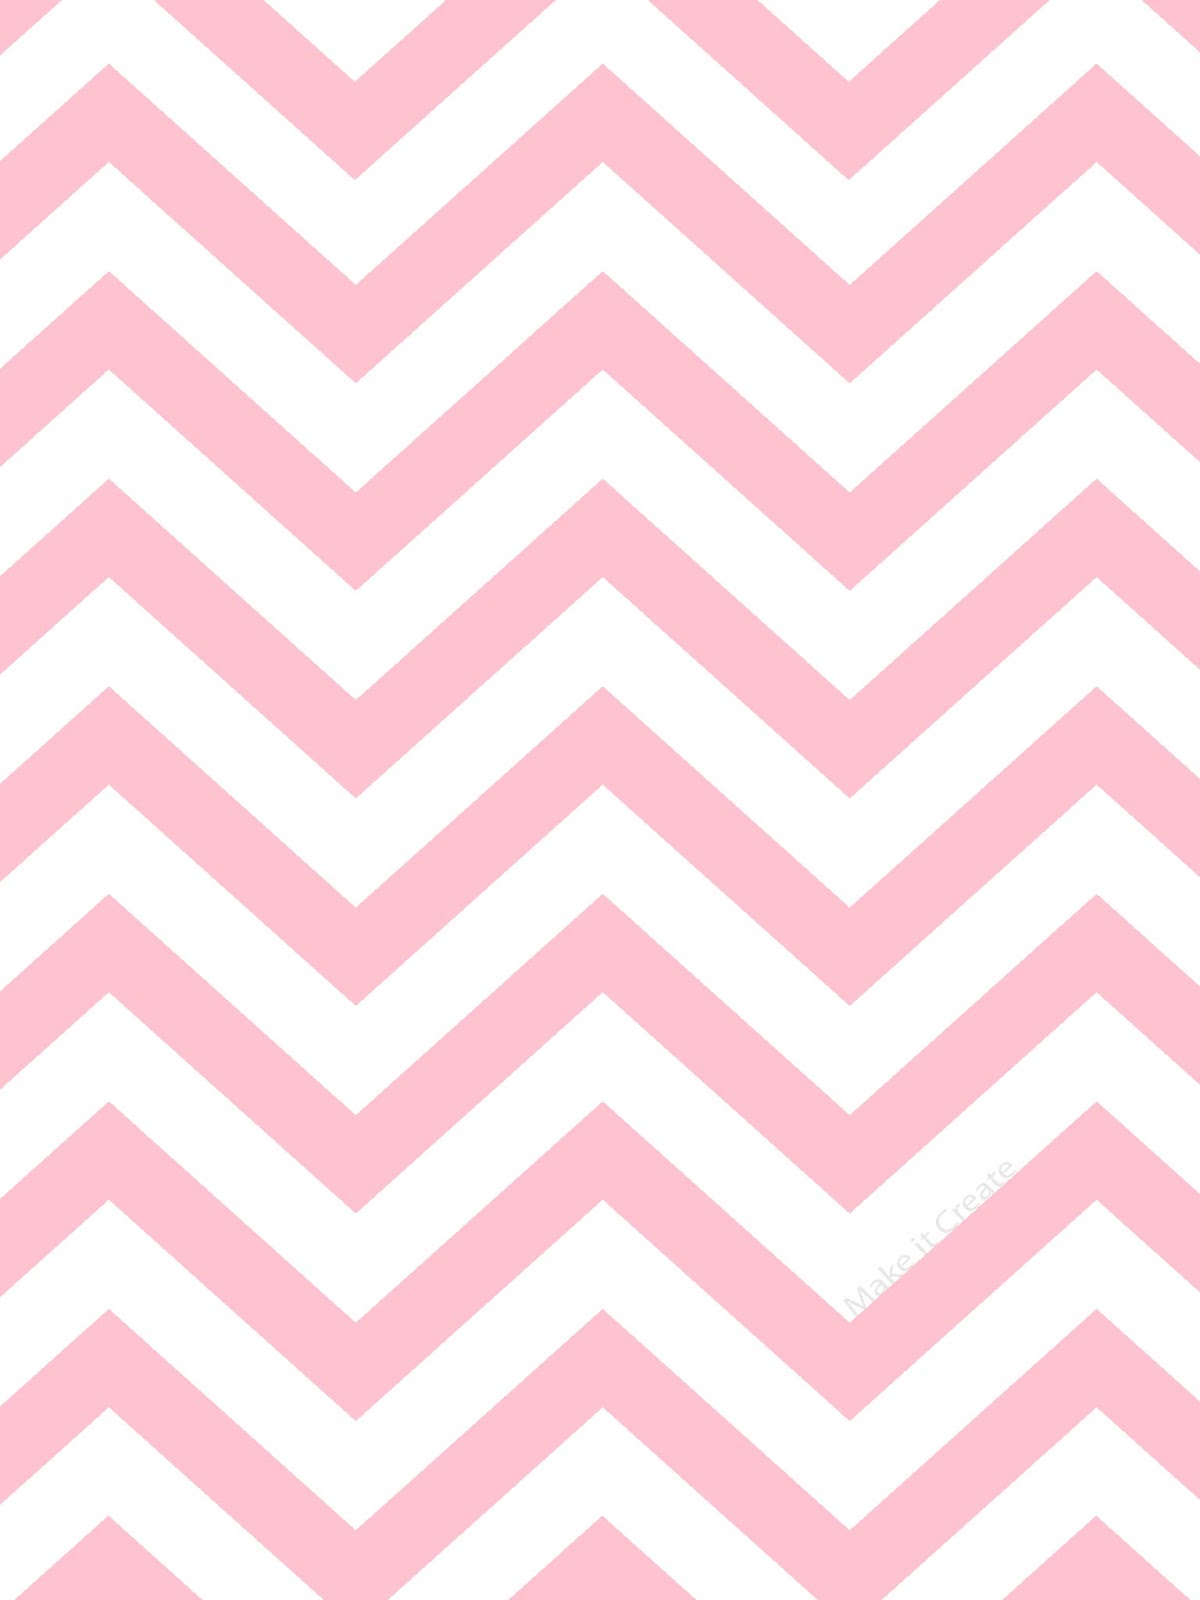 Wallpaper clipart pink White Collections And Pink Wallpaper